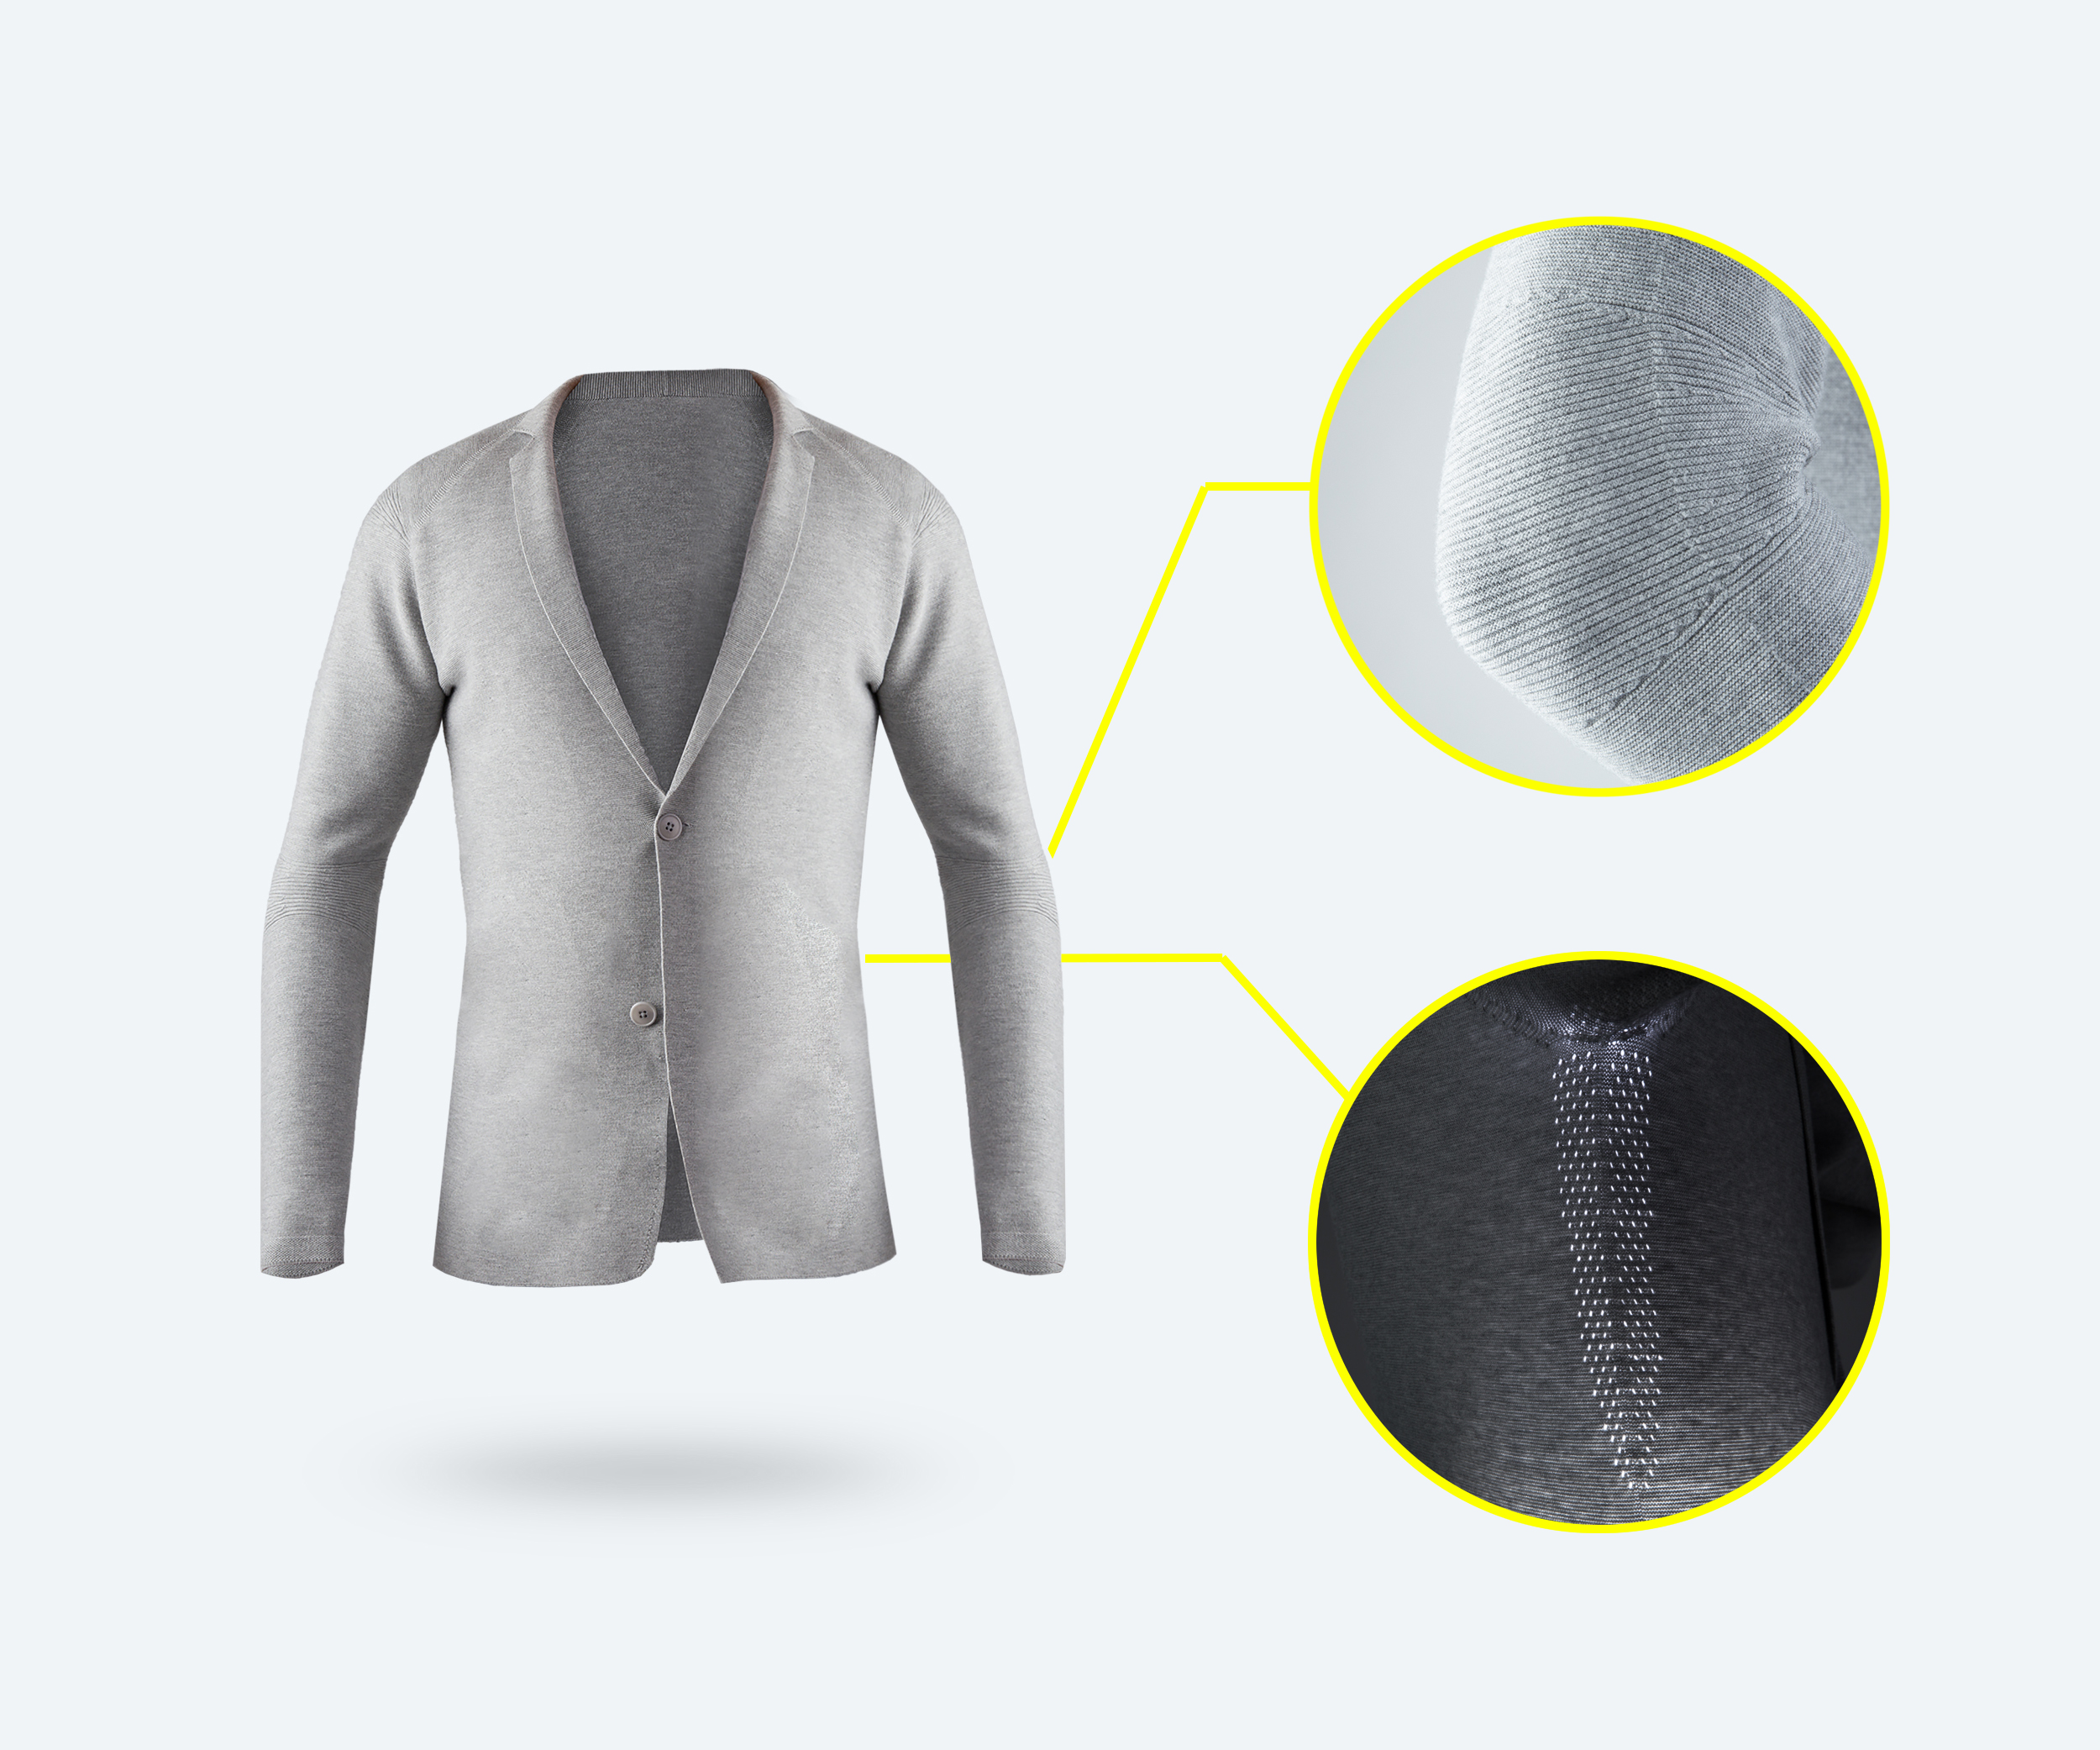 Ministry of Supply launched its first range of 3D knitted seamless blazers in 2016. © Ministry of Supply